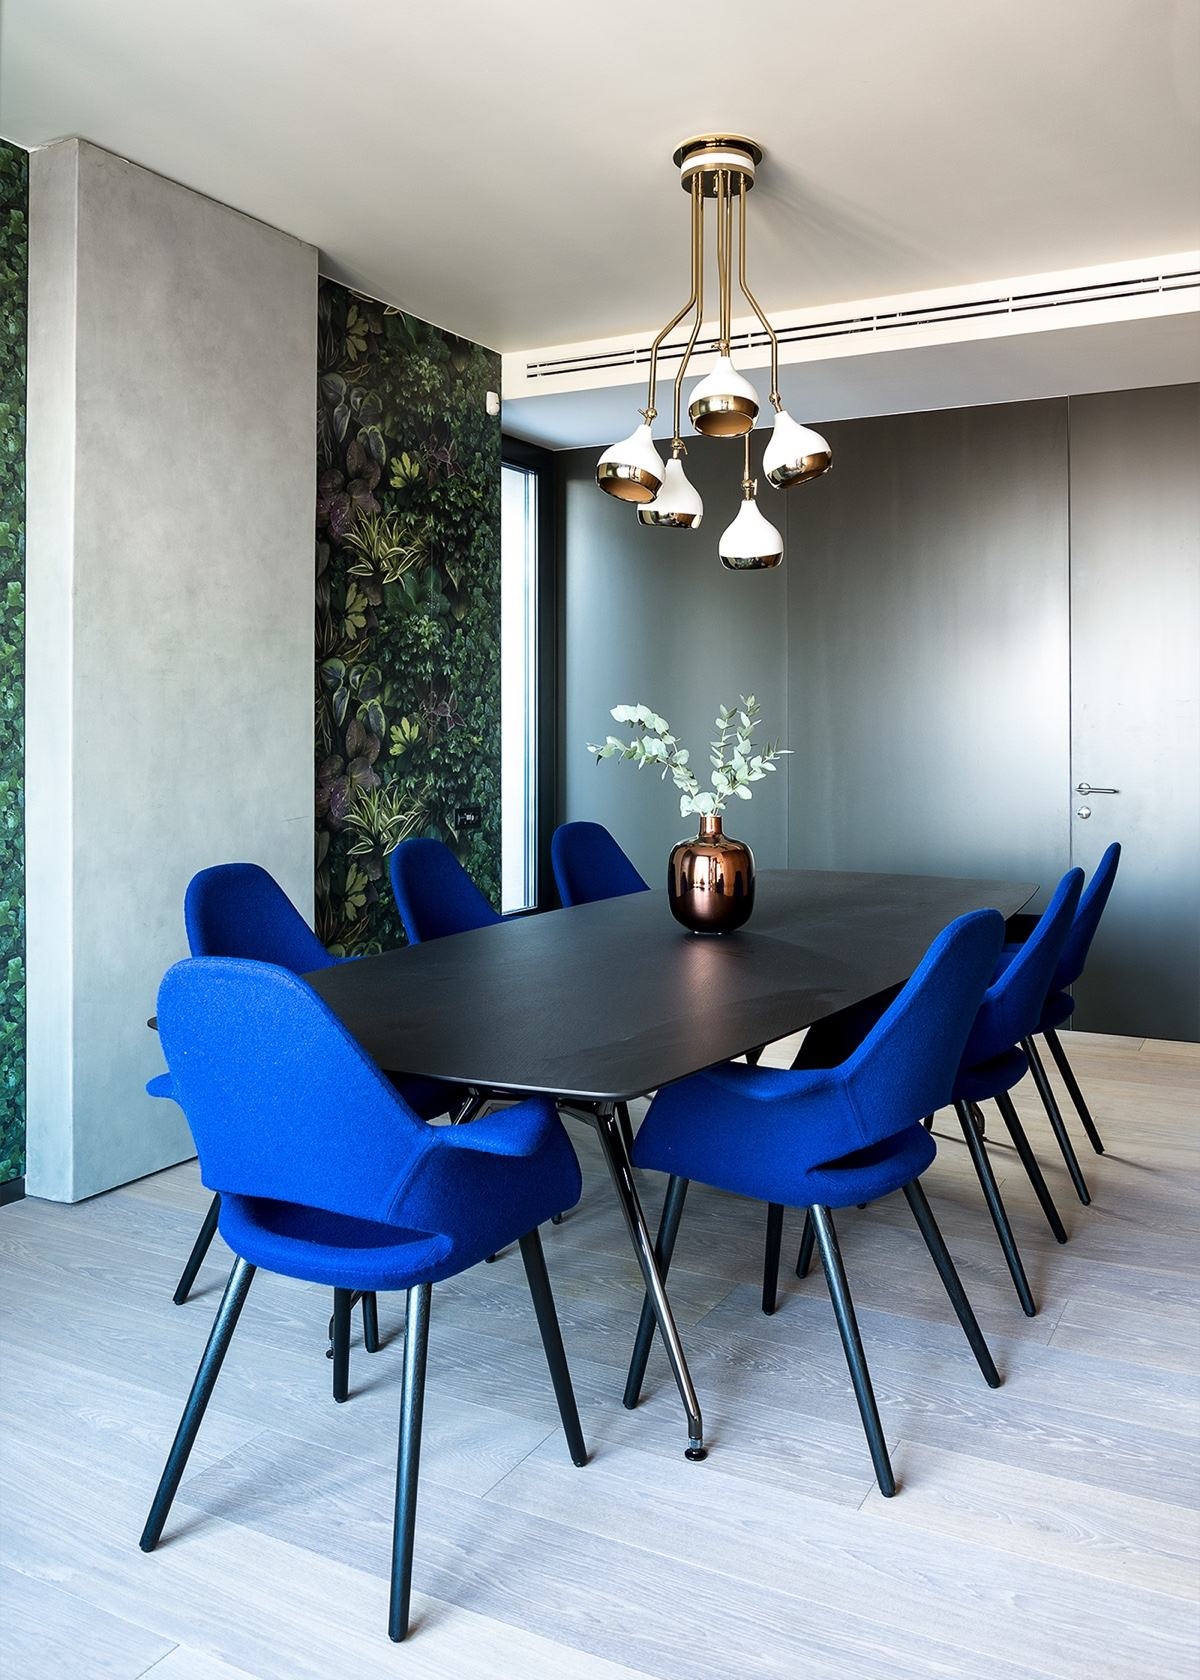 Dining Area - Modern perfection in kyiv apartment